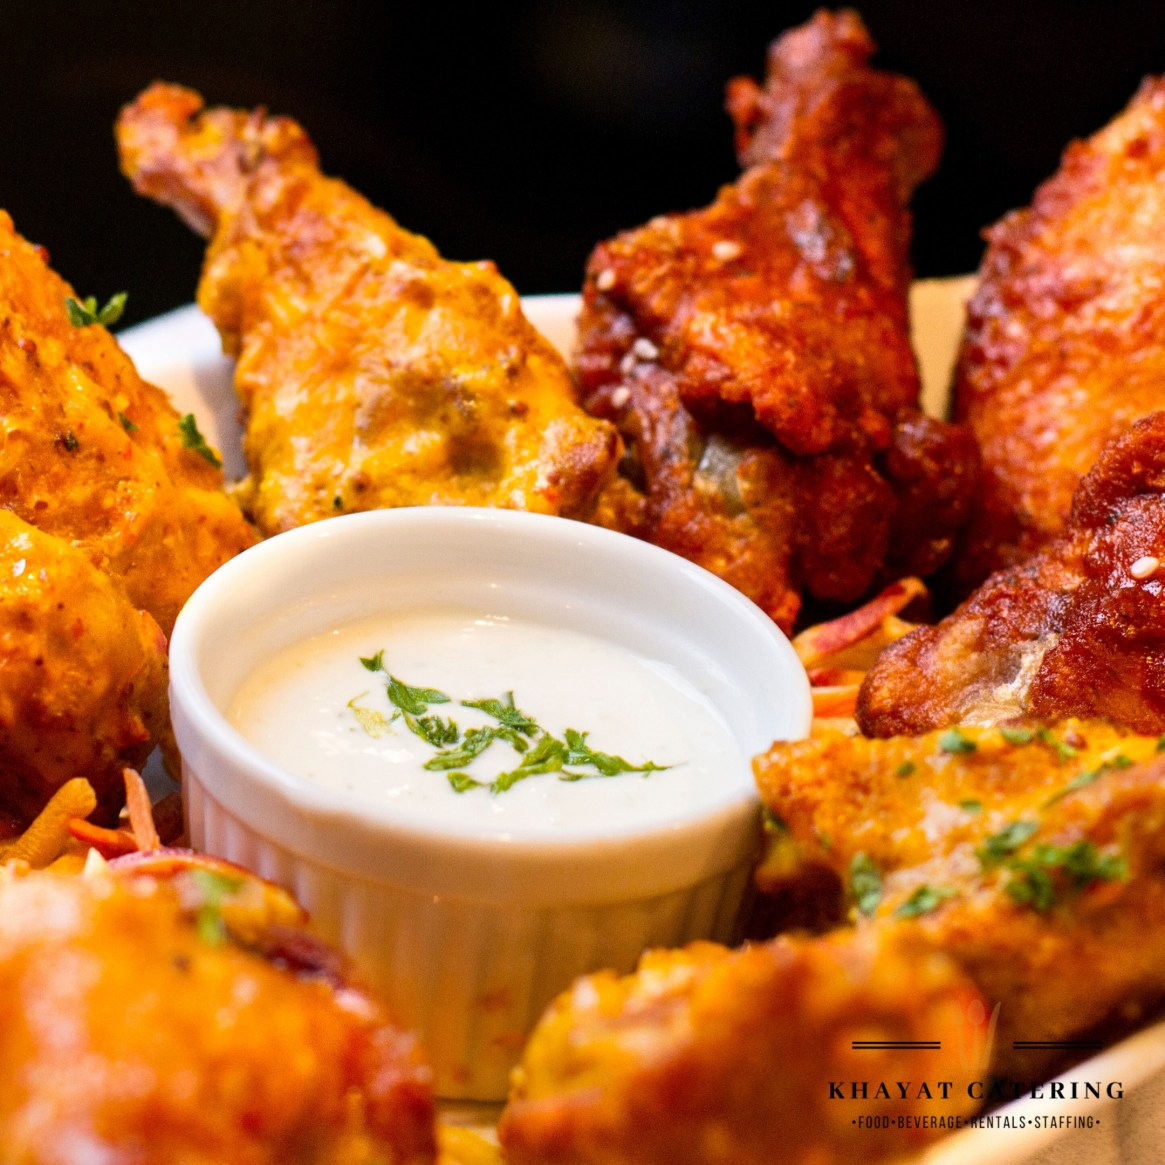 Khayat Catering chicken wings